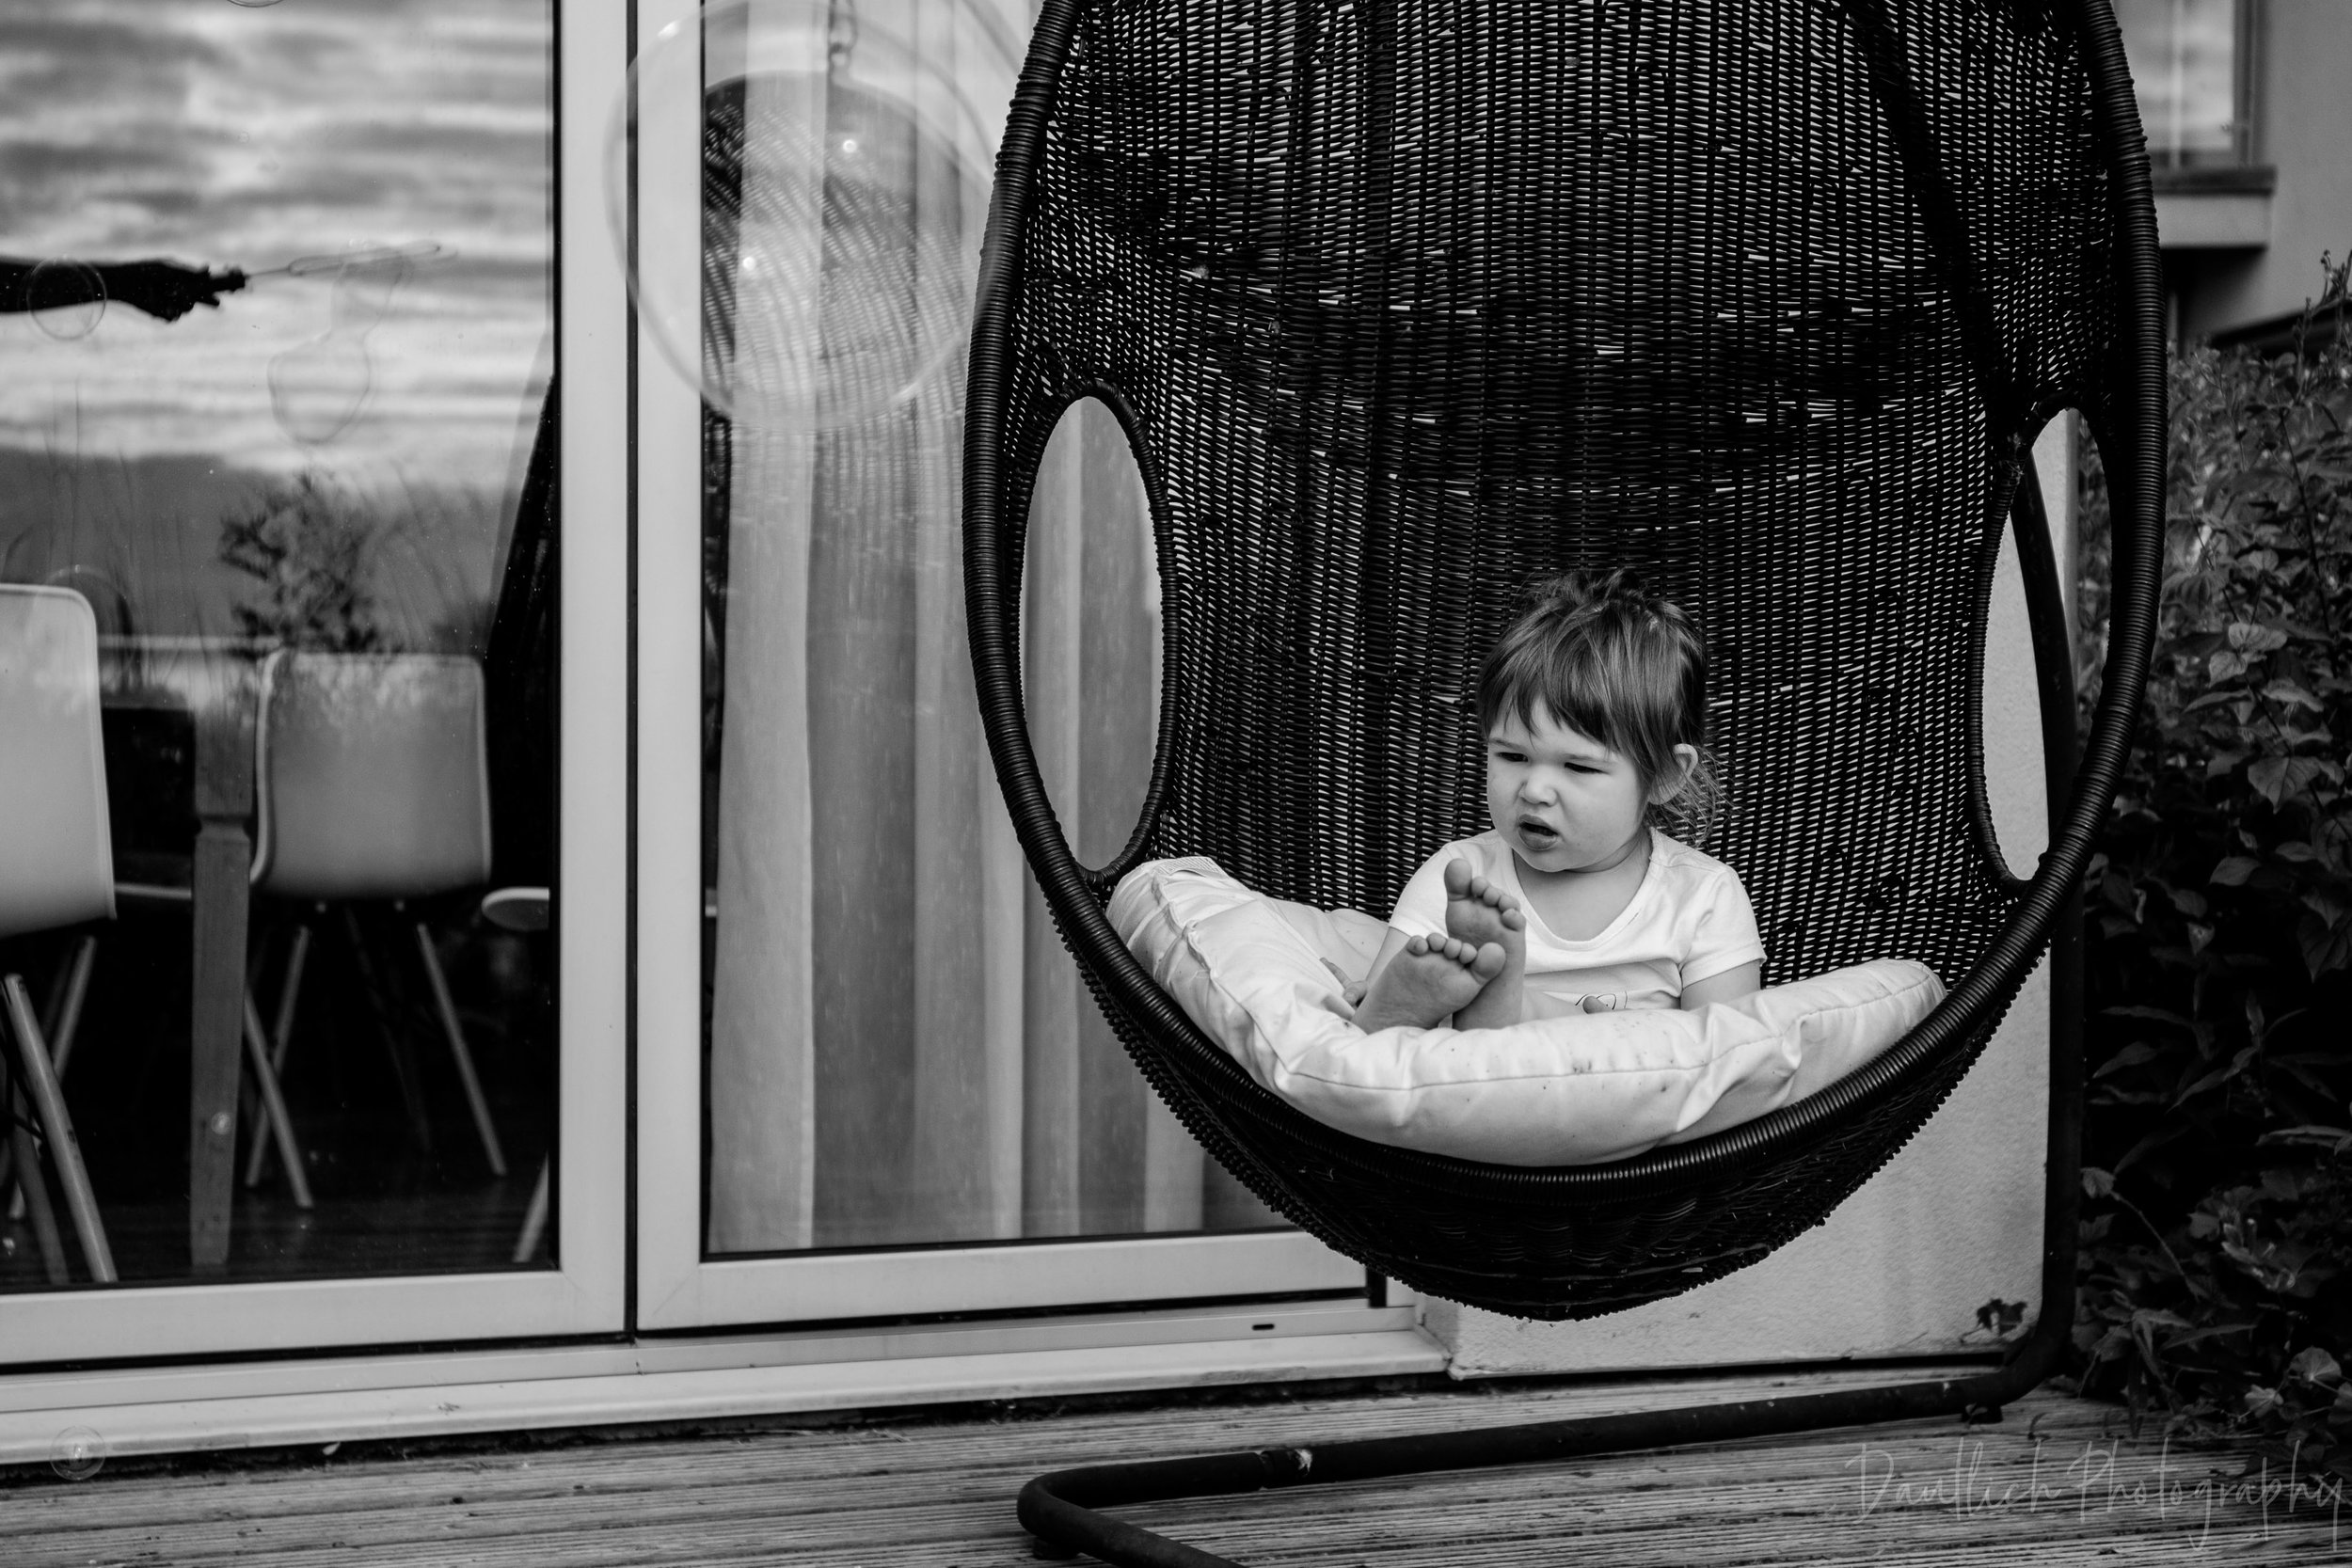 Toddler sits in egg chair while dad blows bubbles toward her.